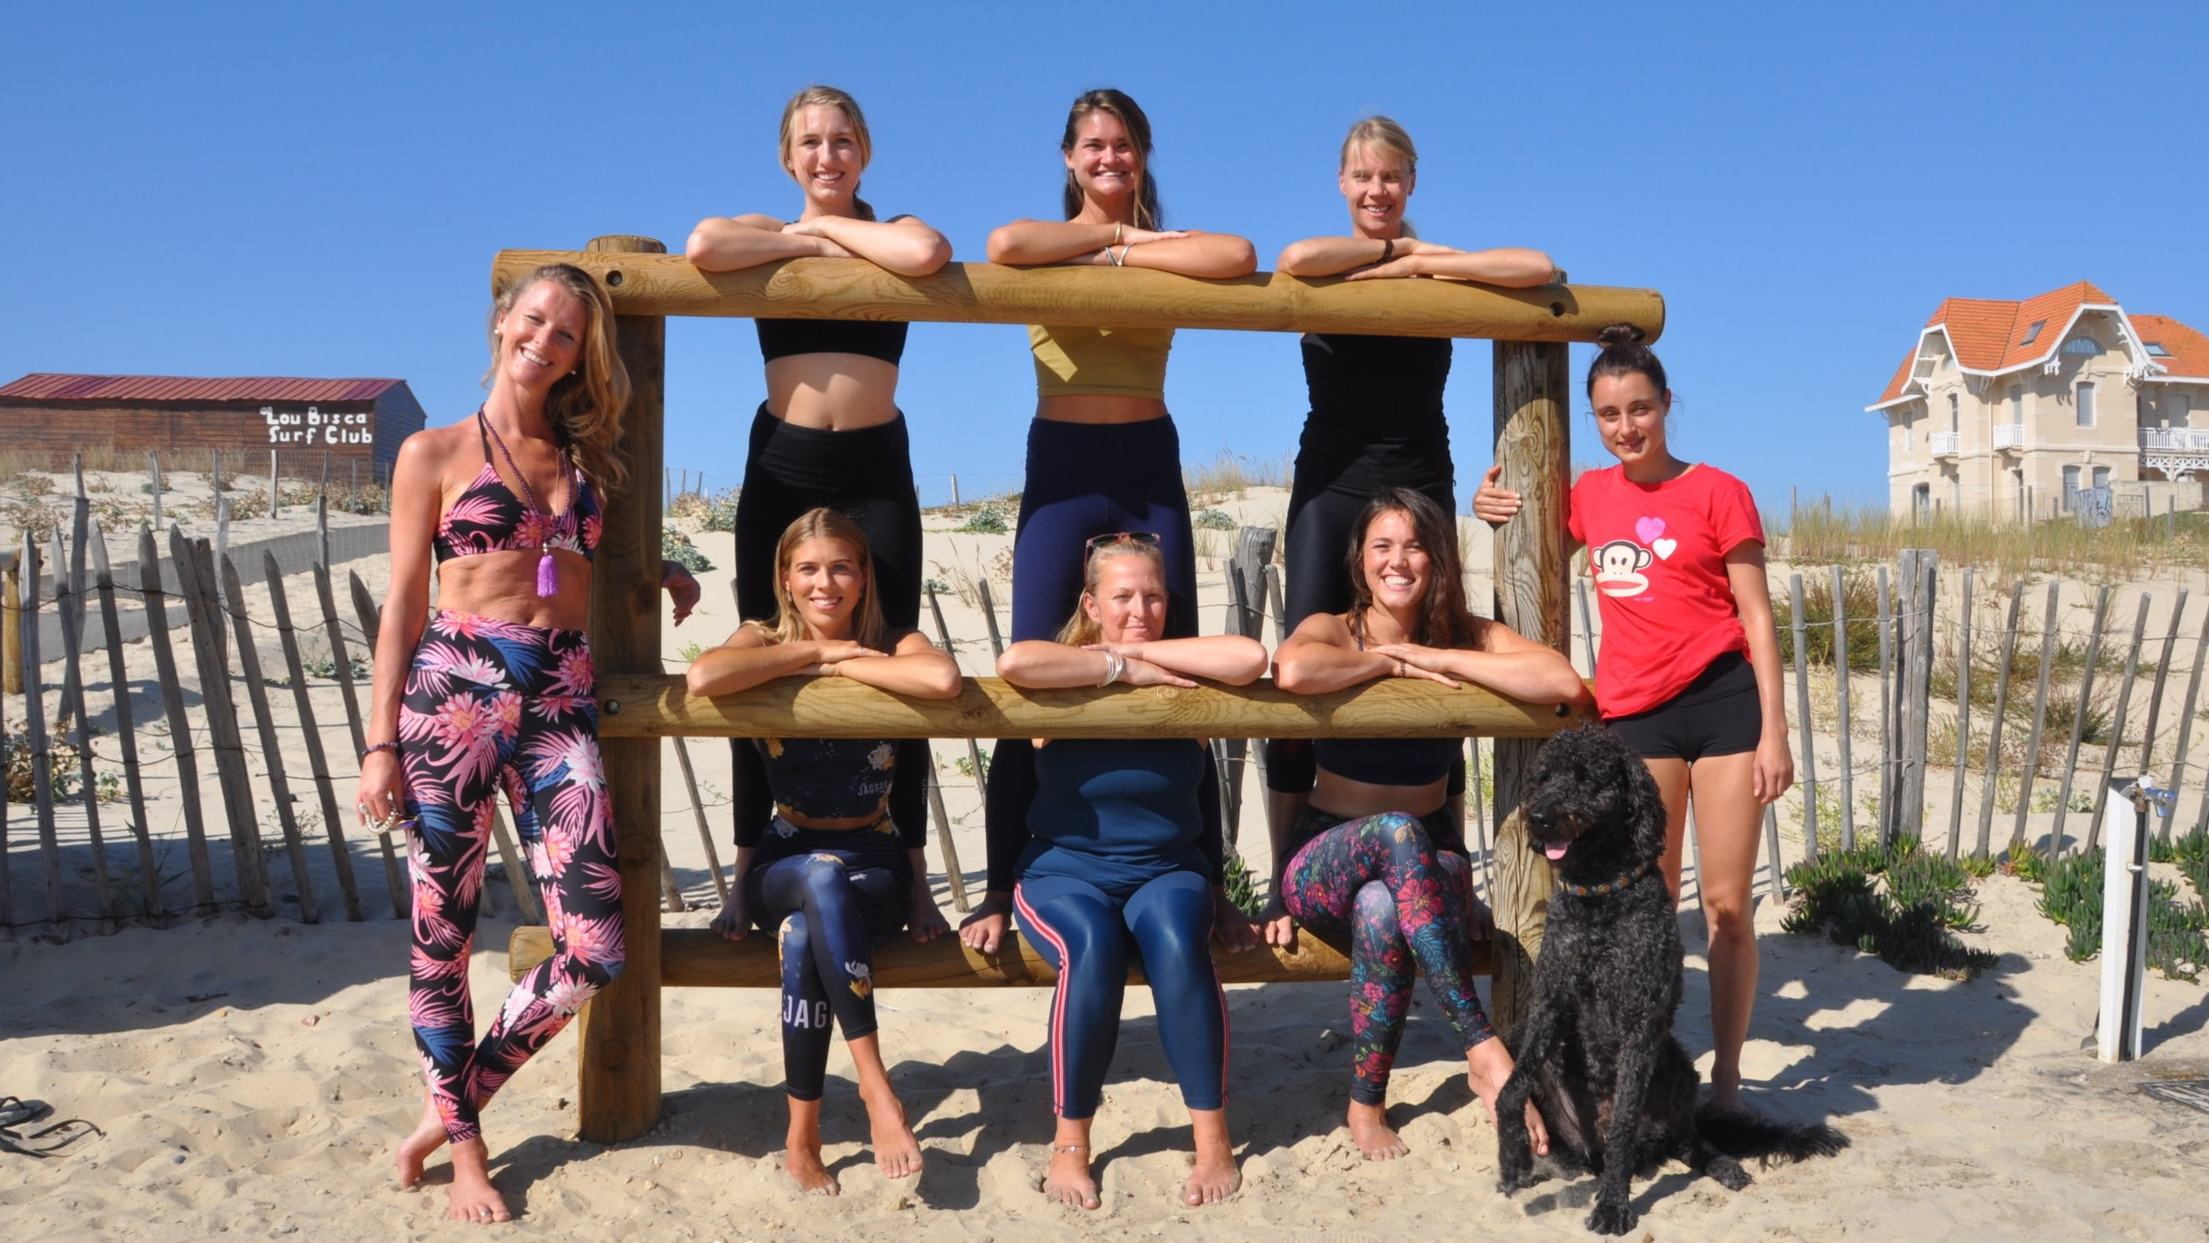 200 hour Yoga Teacher Training - Certificate training affiliated with Yoga Alliance. A 20 day intensive + transformational residential program with Rachel Hanberry and a close circle of 6 women. Explore your inner wild woman.